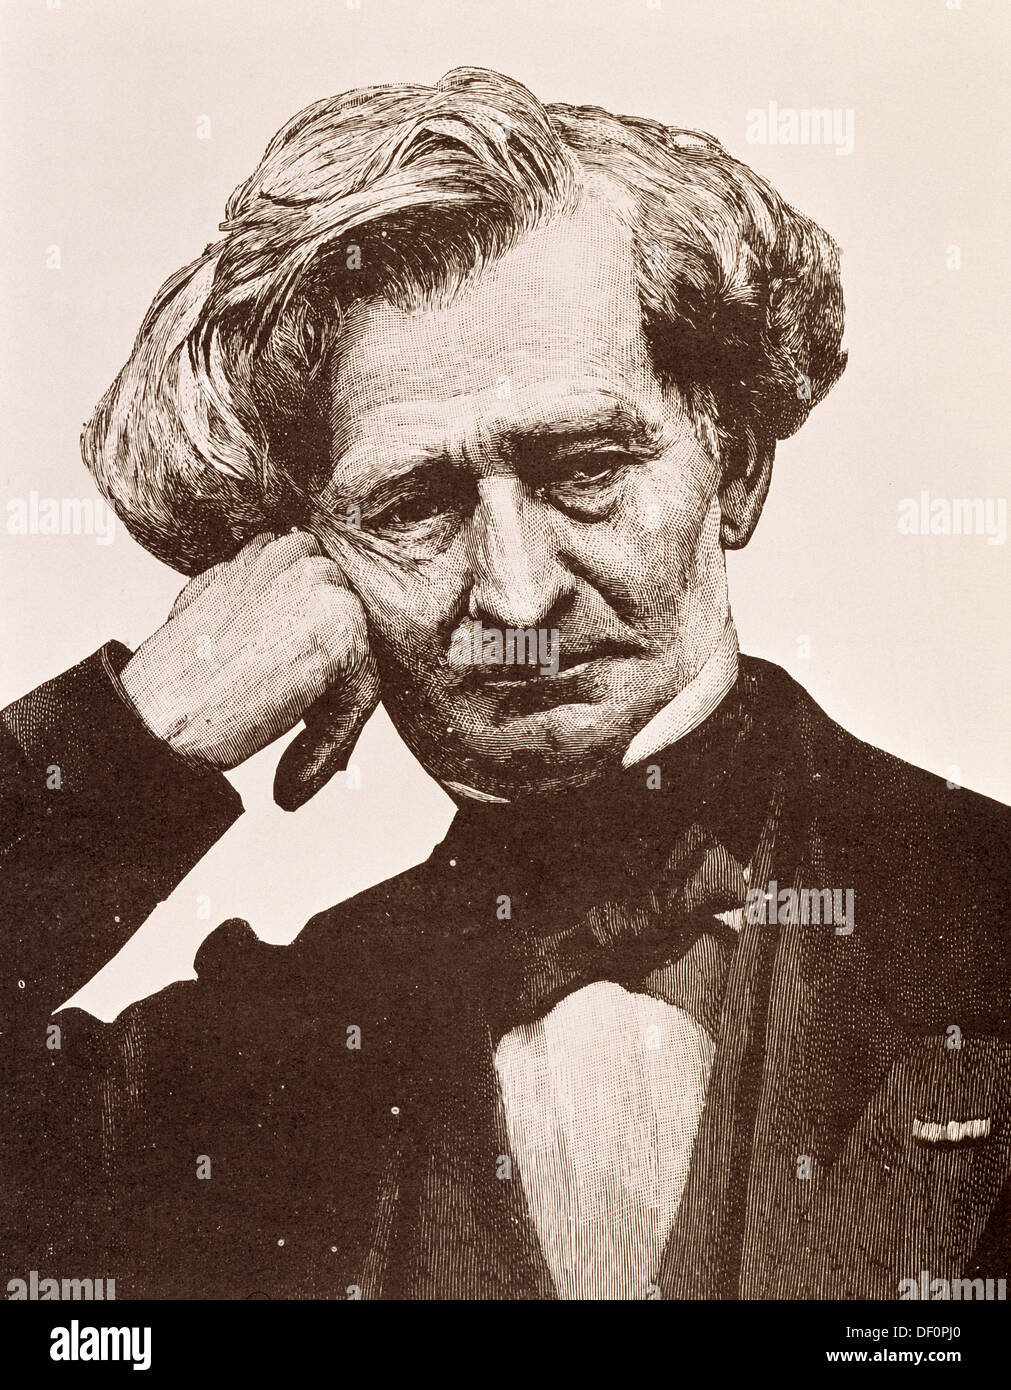 Hector Berlioz (1803-1869), French composer - Stock Image